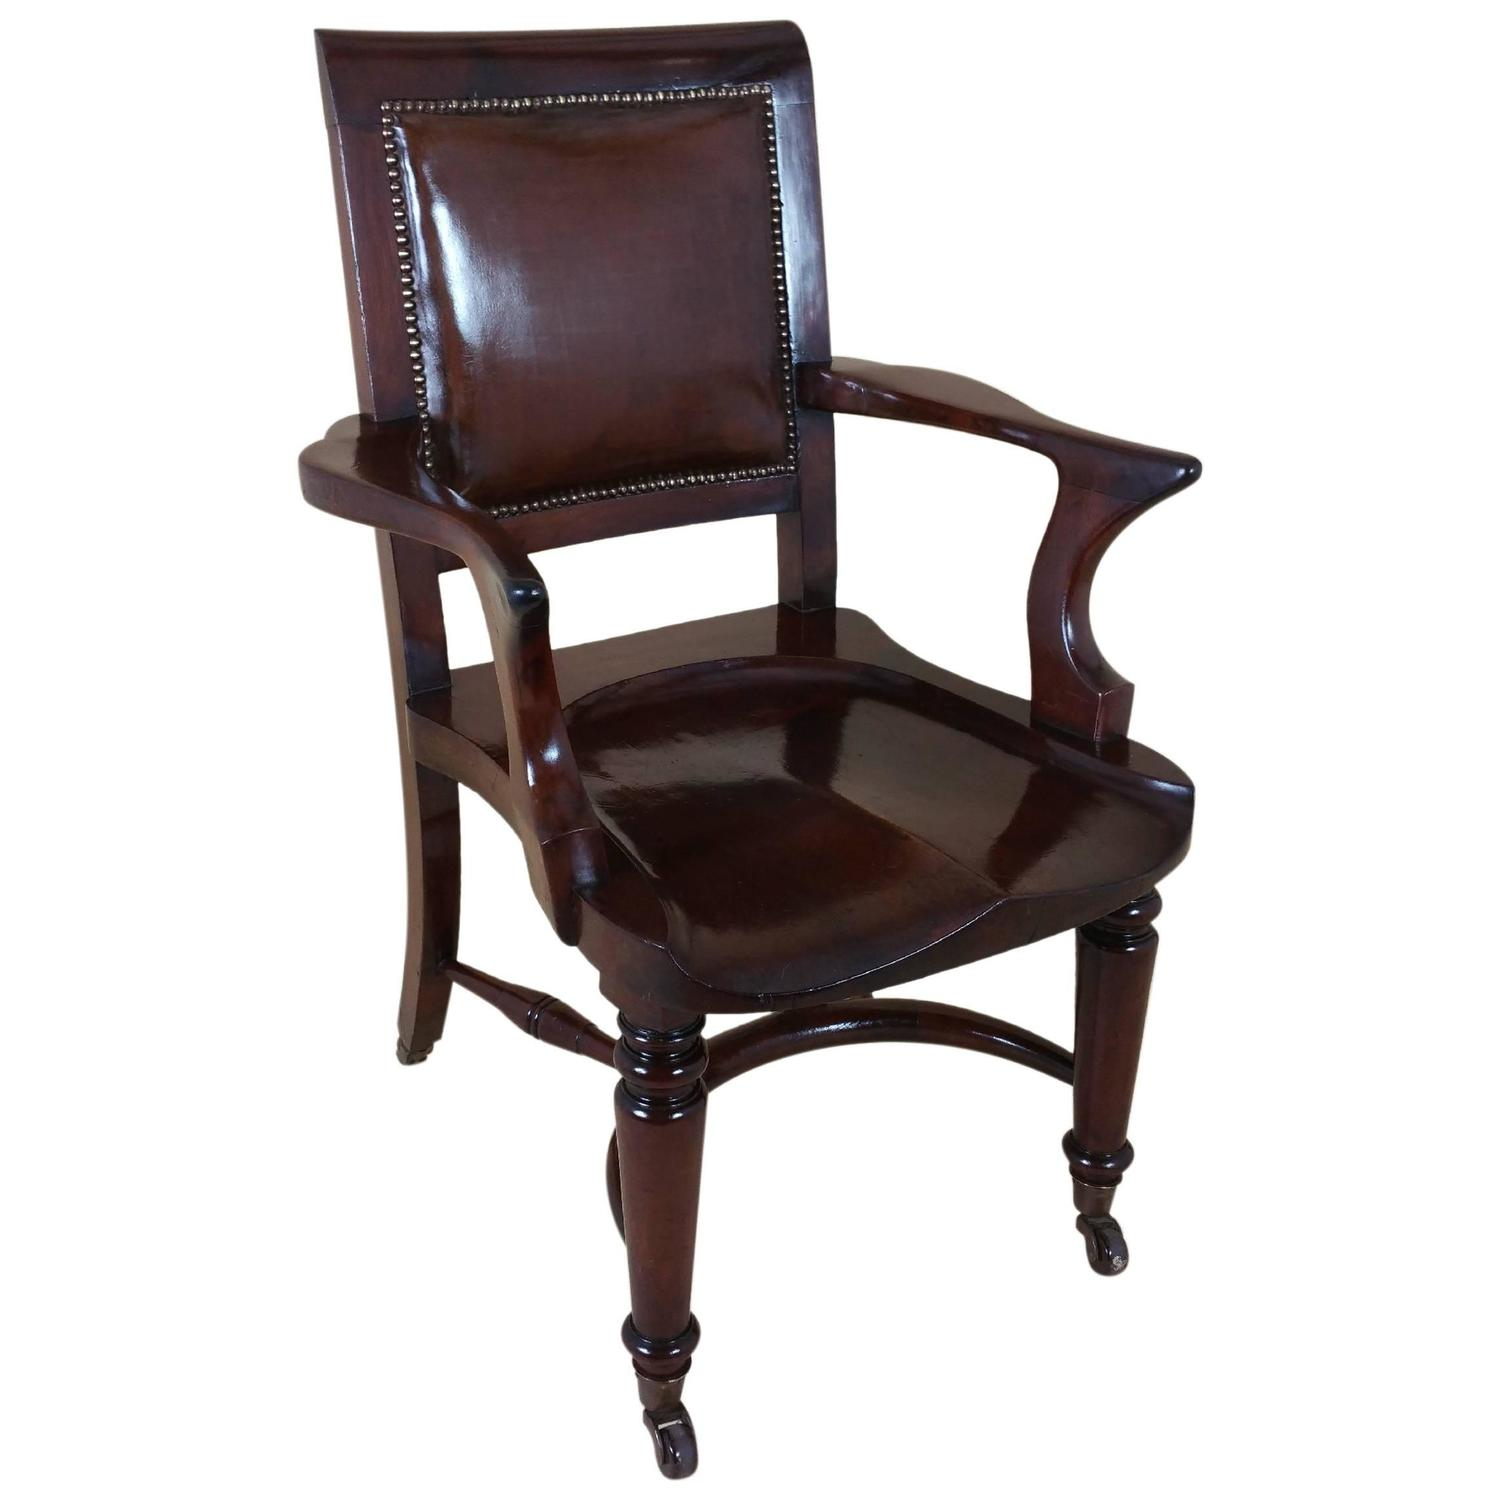 Victorian Mahogany Solid Seat Desk Chair With Leather Back